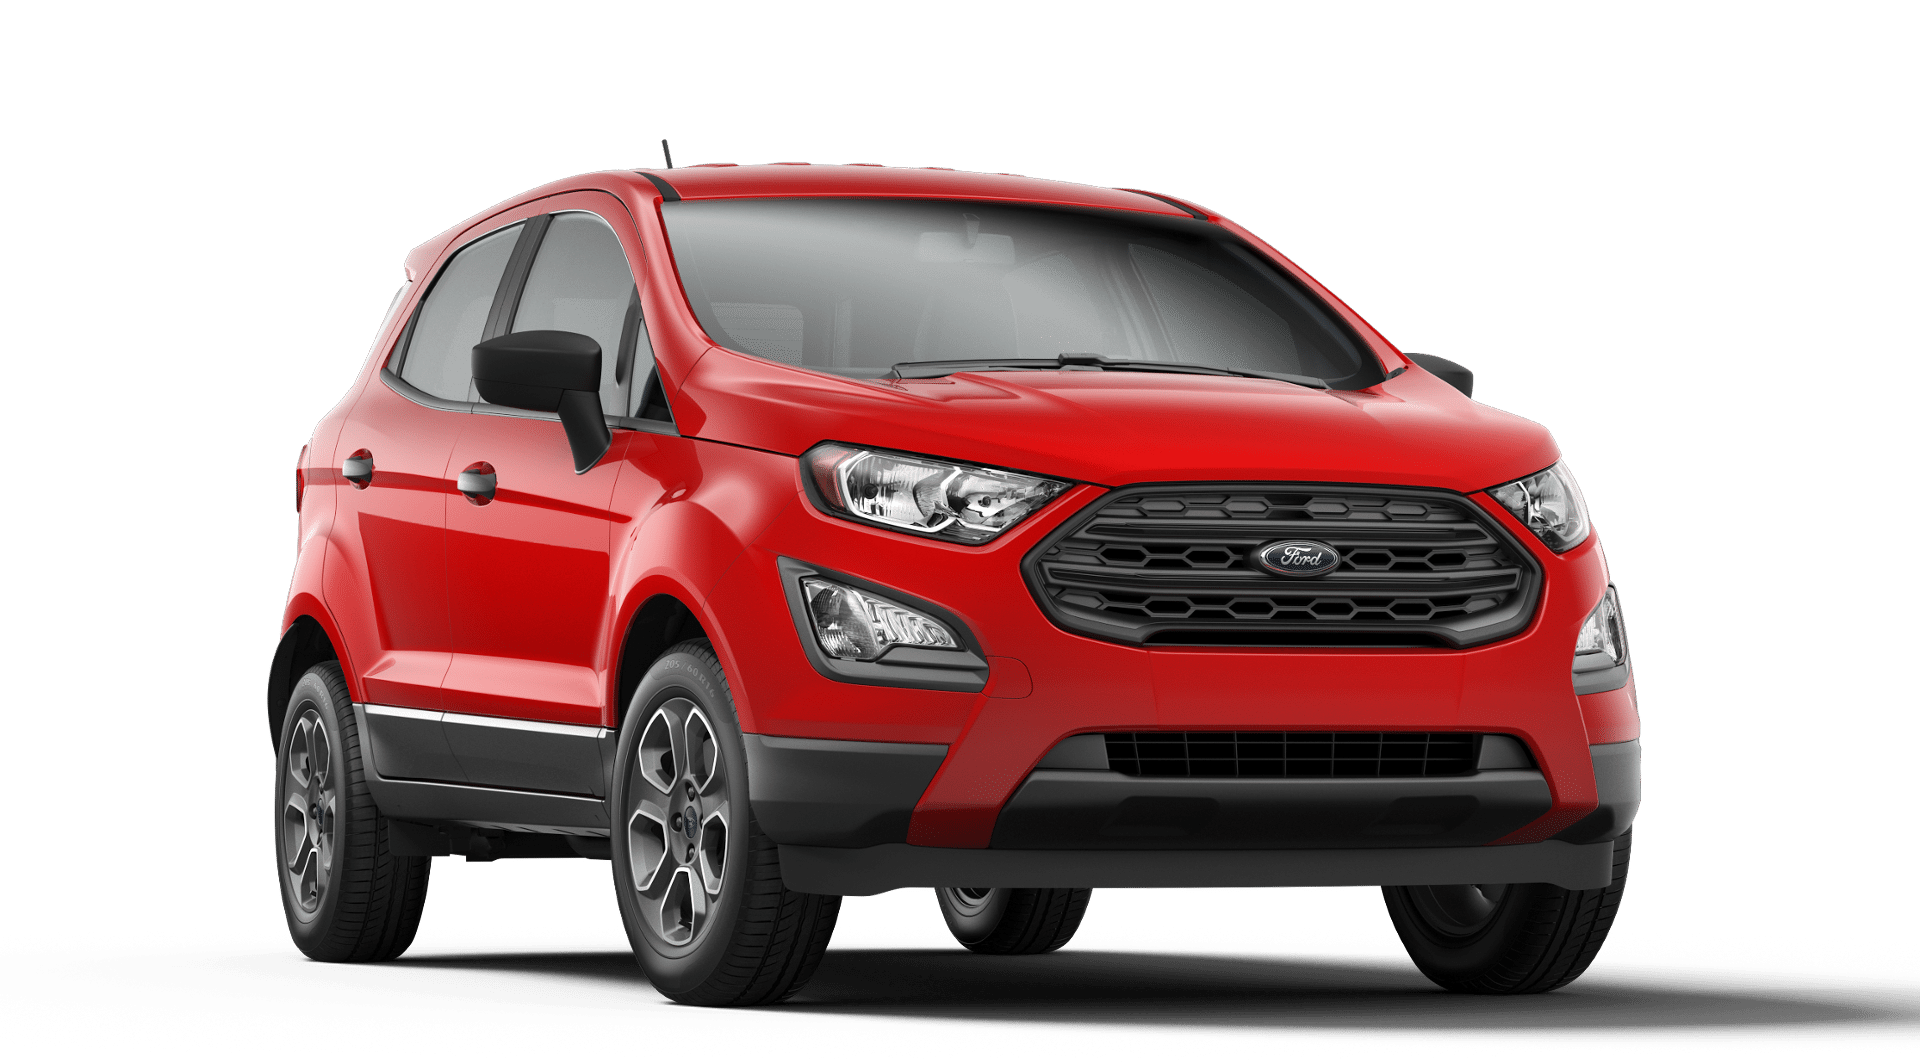 2019-Ford-EcoSport-Race-Red-Exterior-Color_o